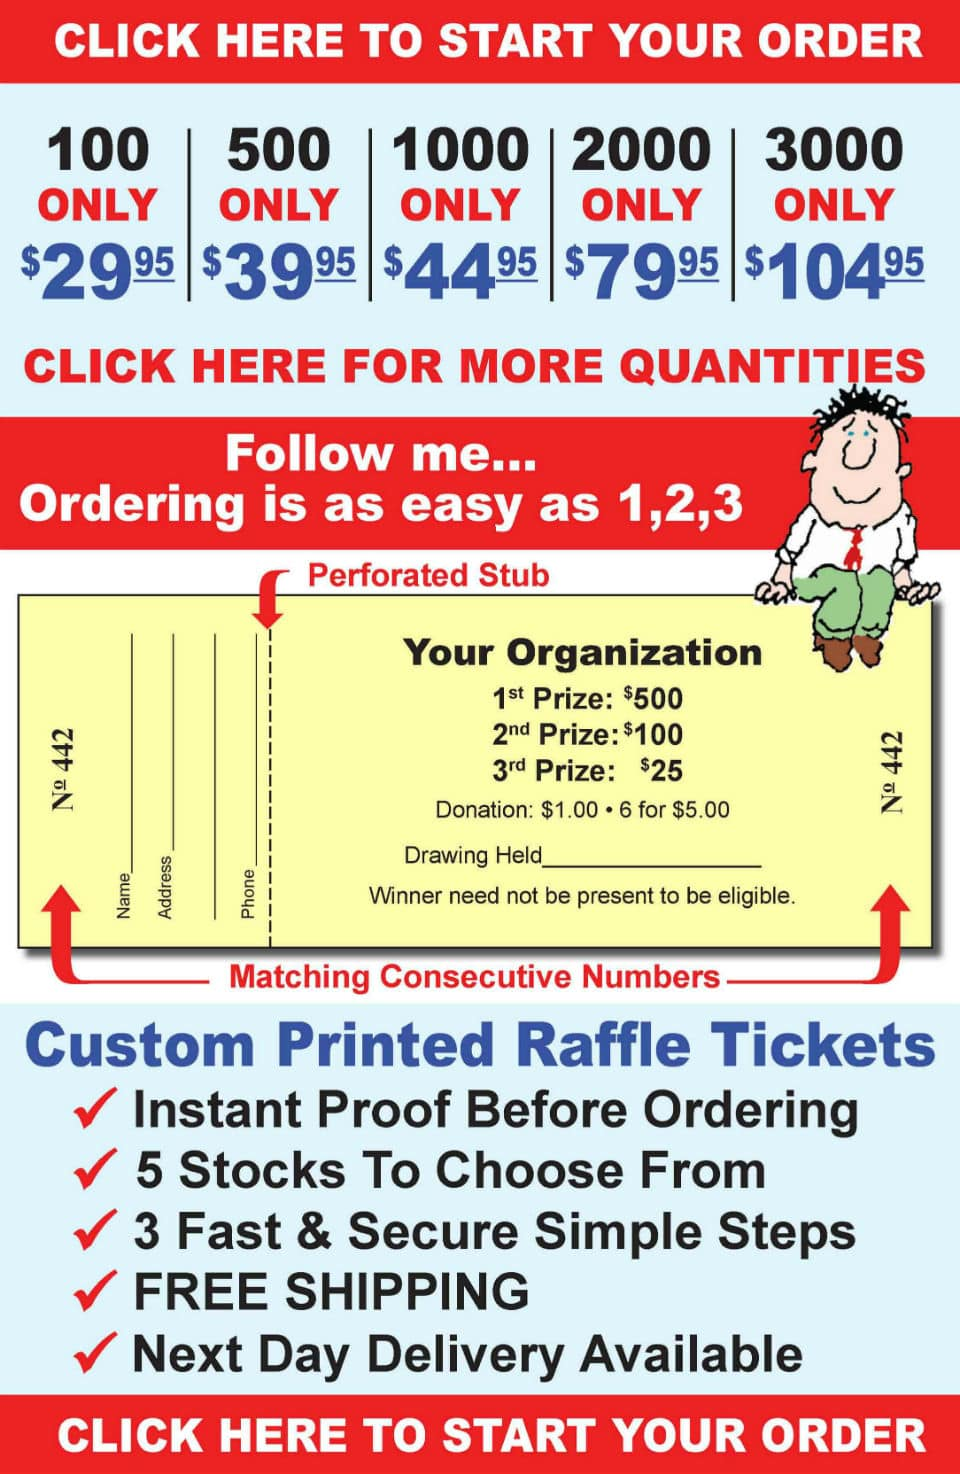 custom raffle tickets are our specialty com no audio mode audio is disabled and user data will not be recorded enable audio